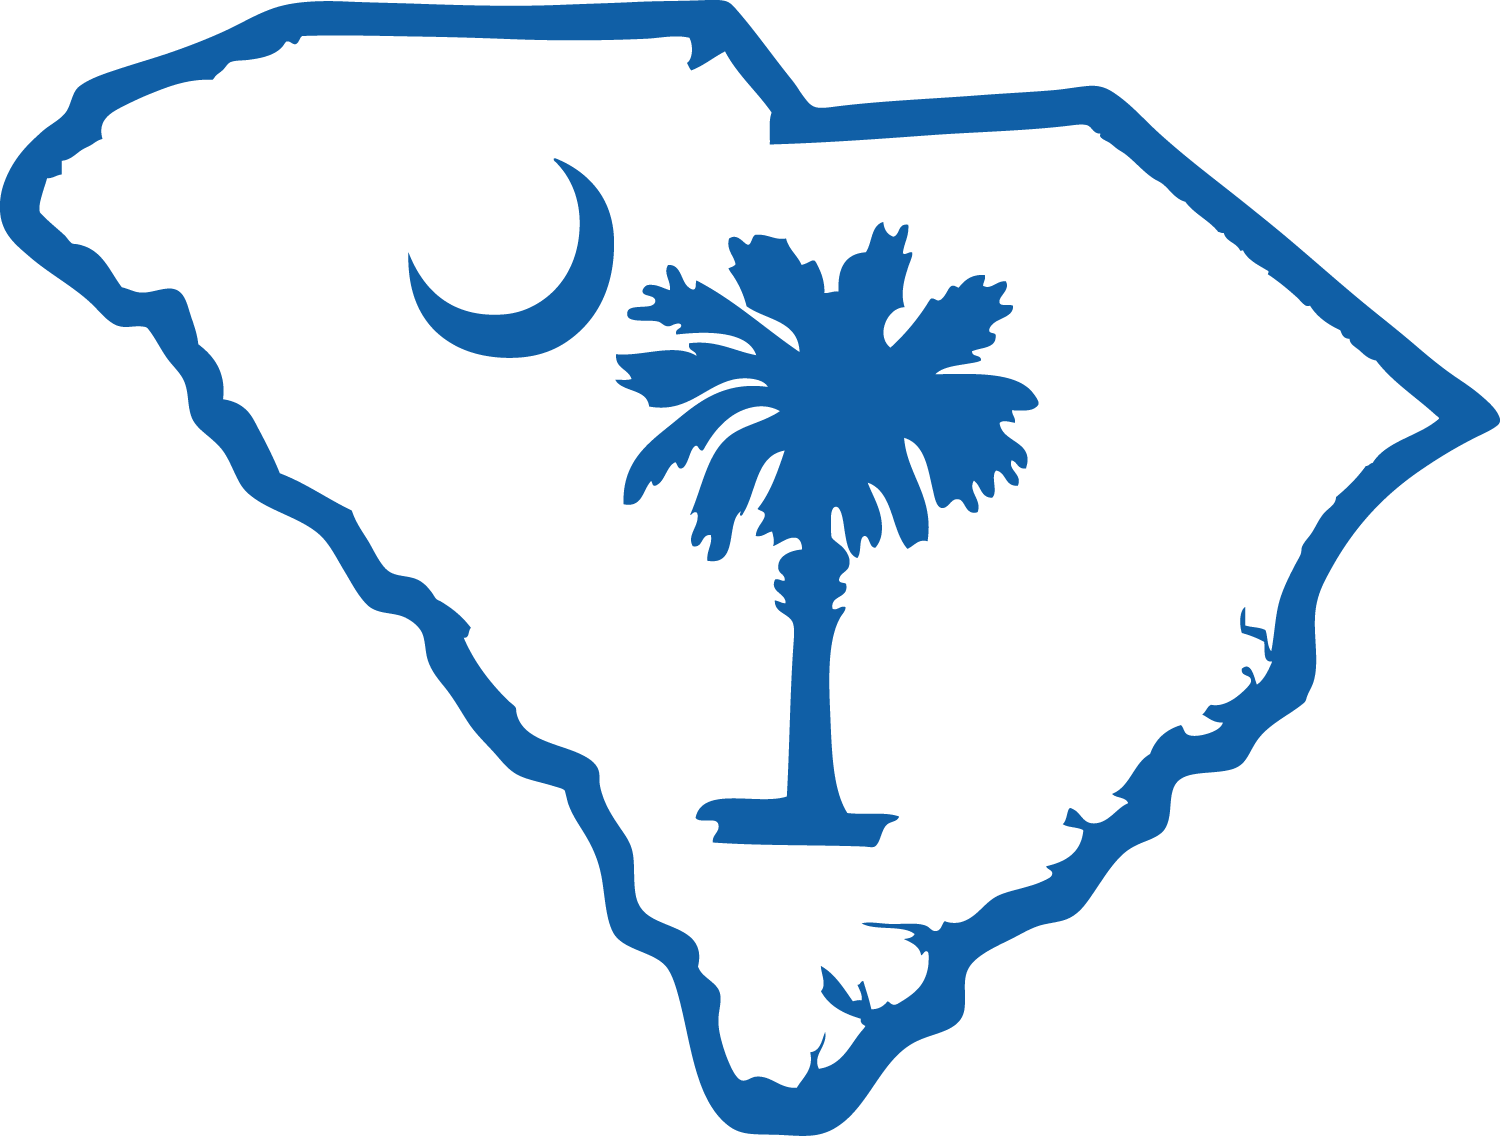 sc state flag clipart clipart suggest gamecocks clipart black and white south carolina gamecock clipart